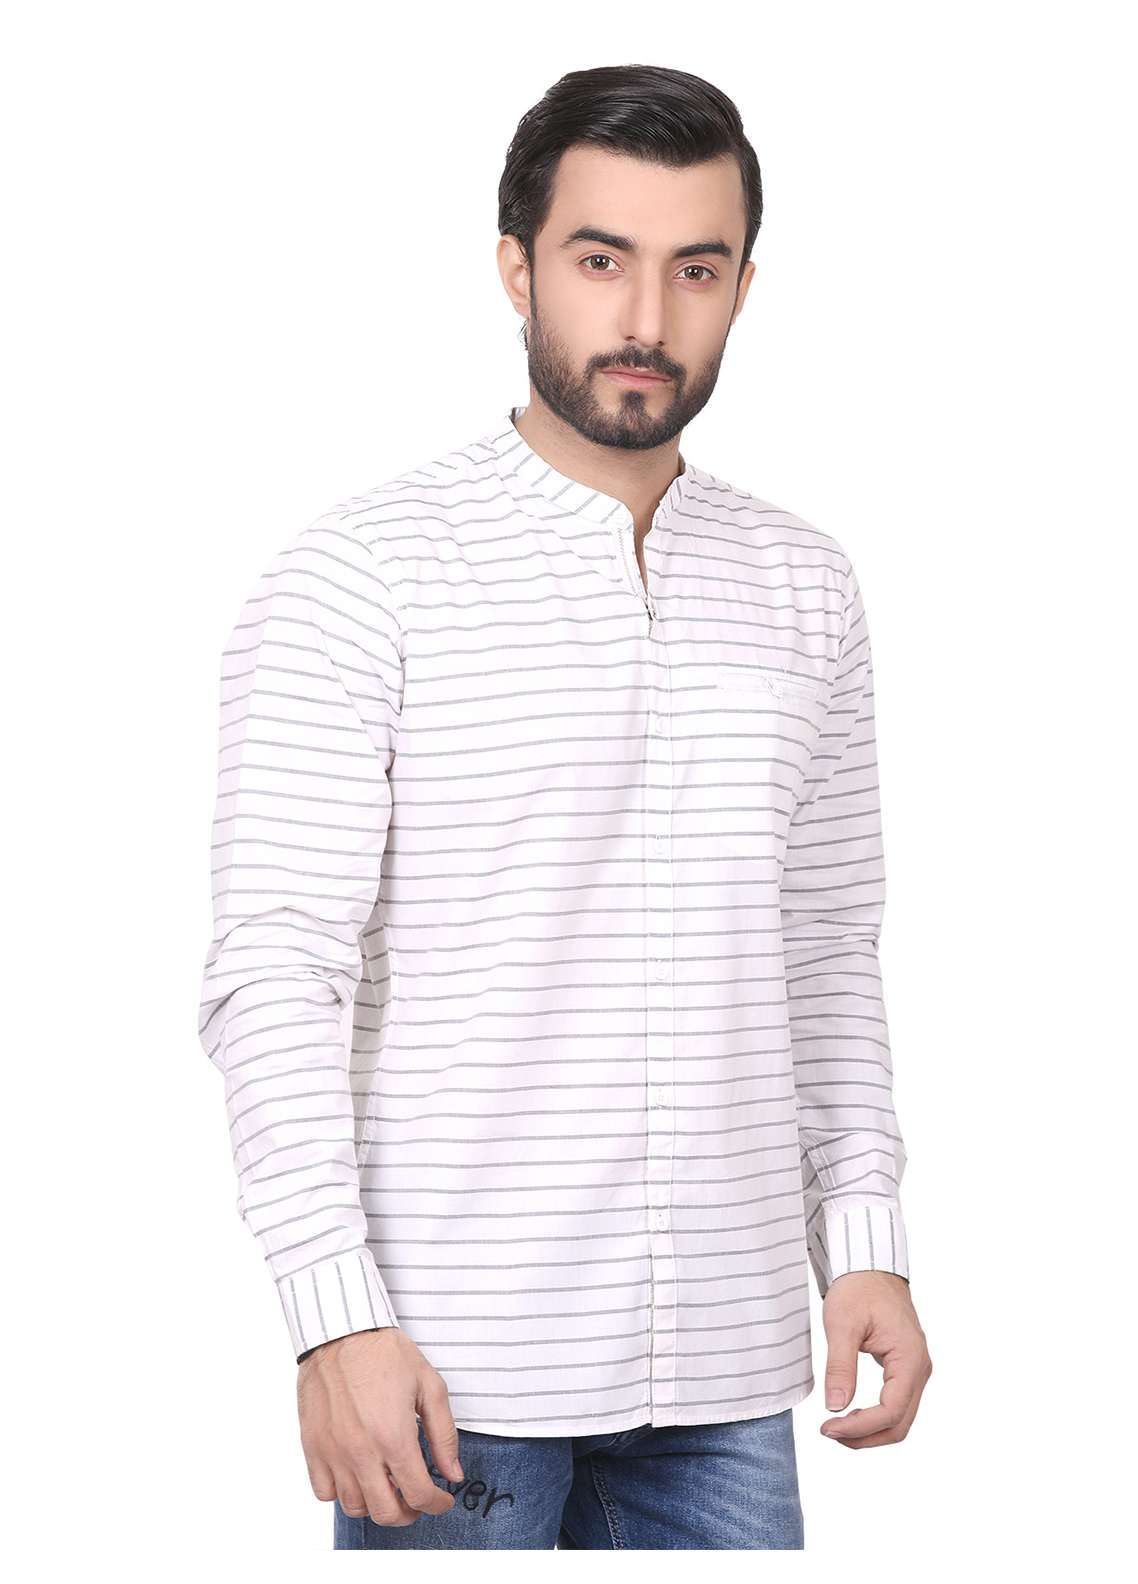 Furor Casual Shirts for Men - White FRM18CS 31187